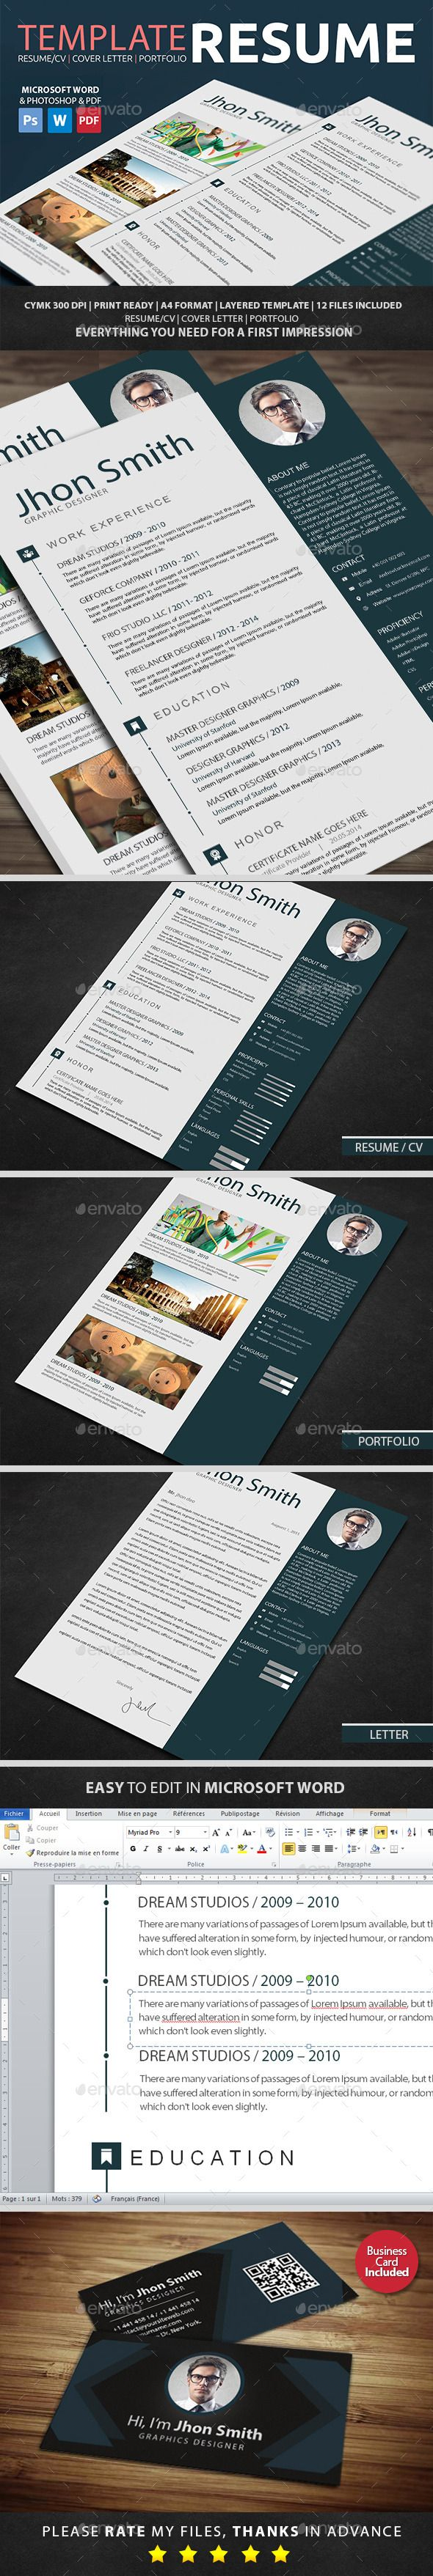 Resume Template Download httpgraphicrivernetitemresume Network Architect